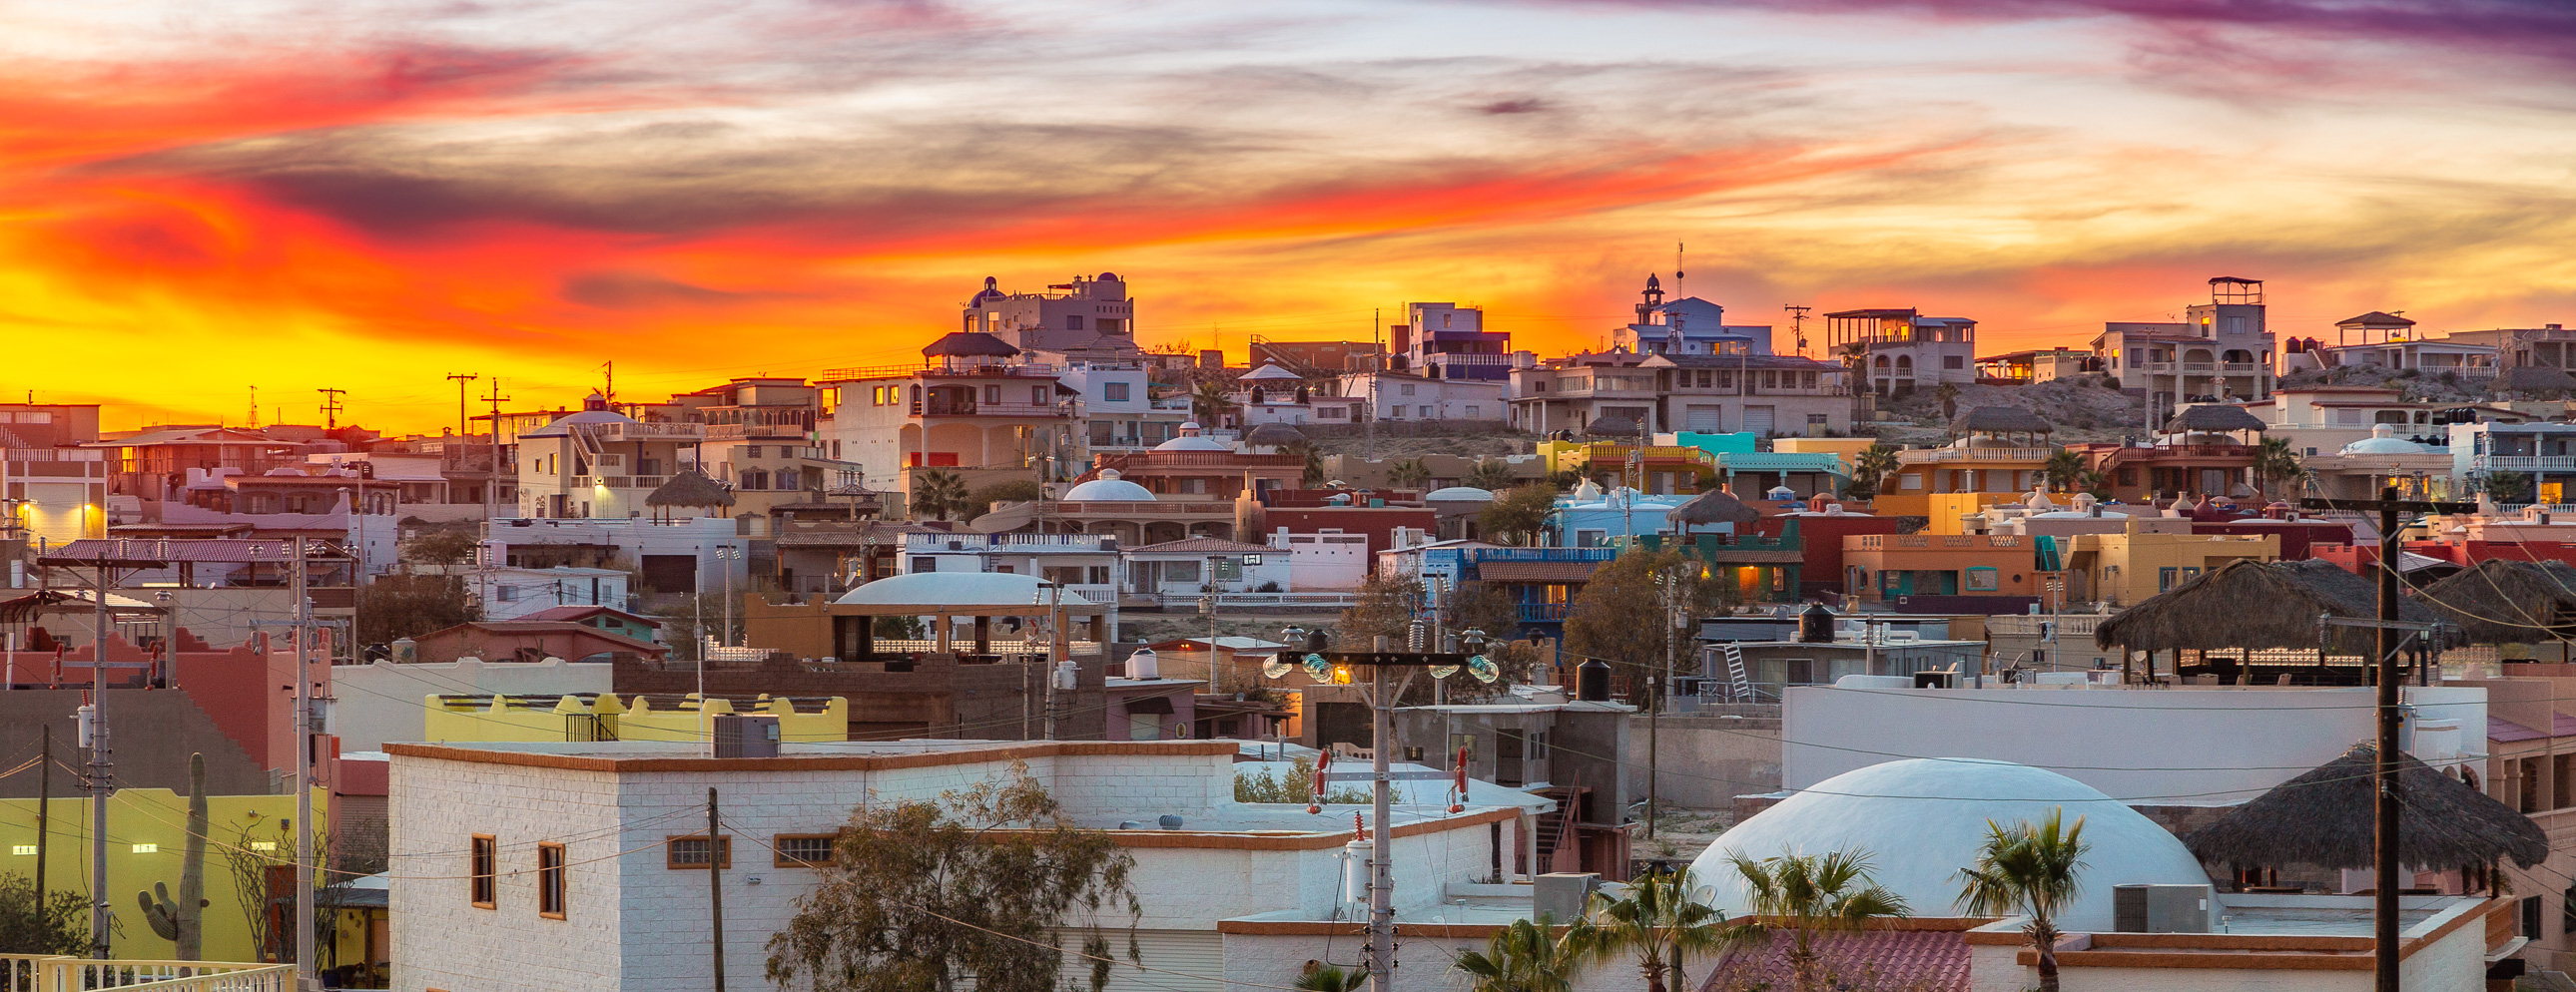 Panoramic photo of a glowing sunset and small houses of Cholla Bay community in Mexico